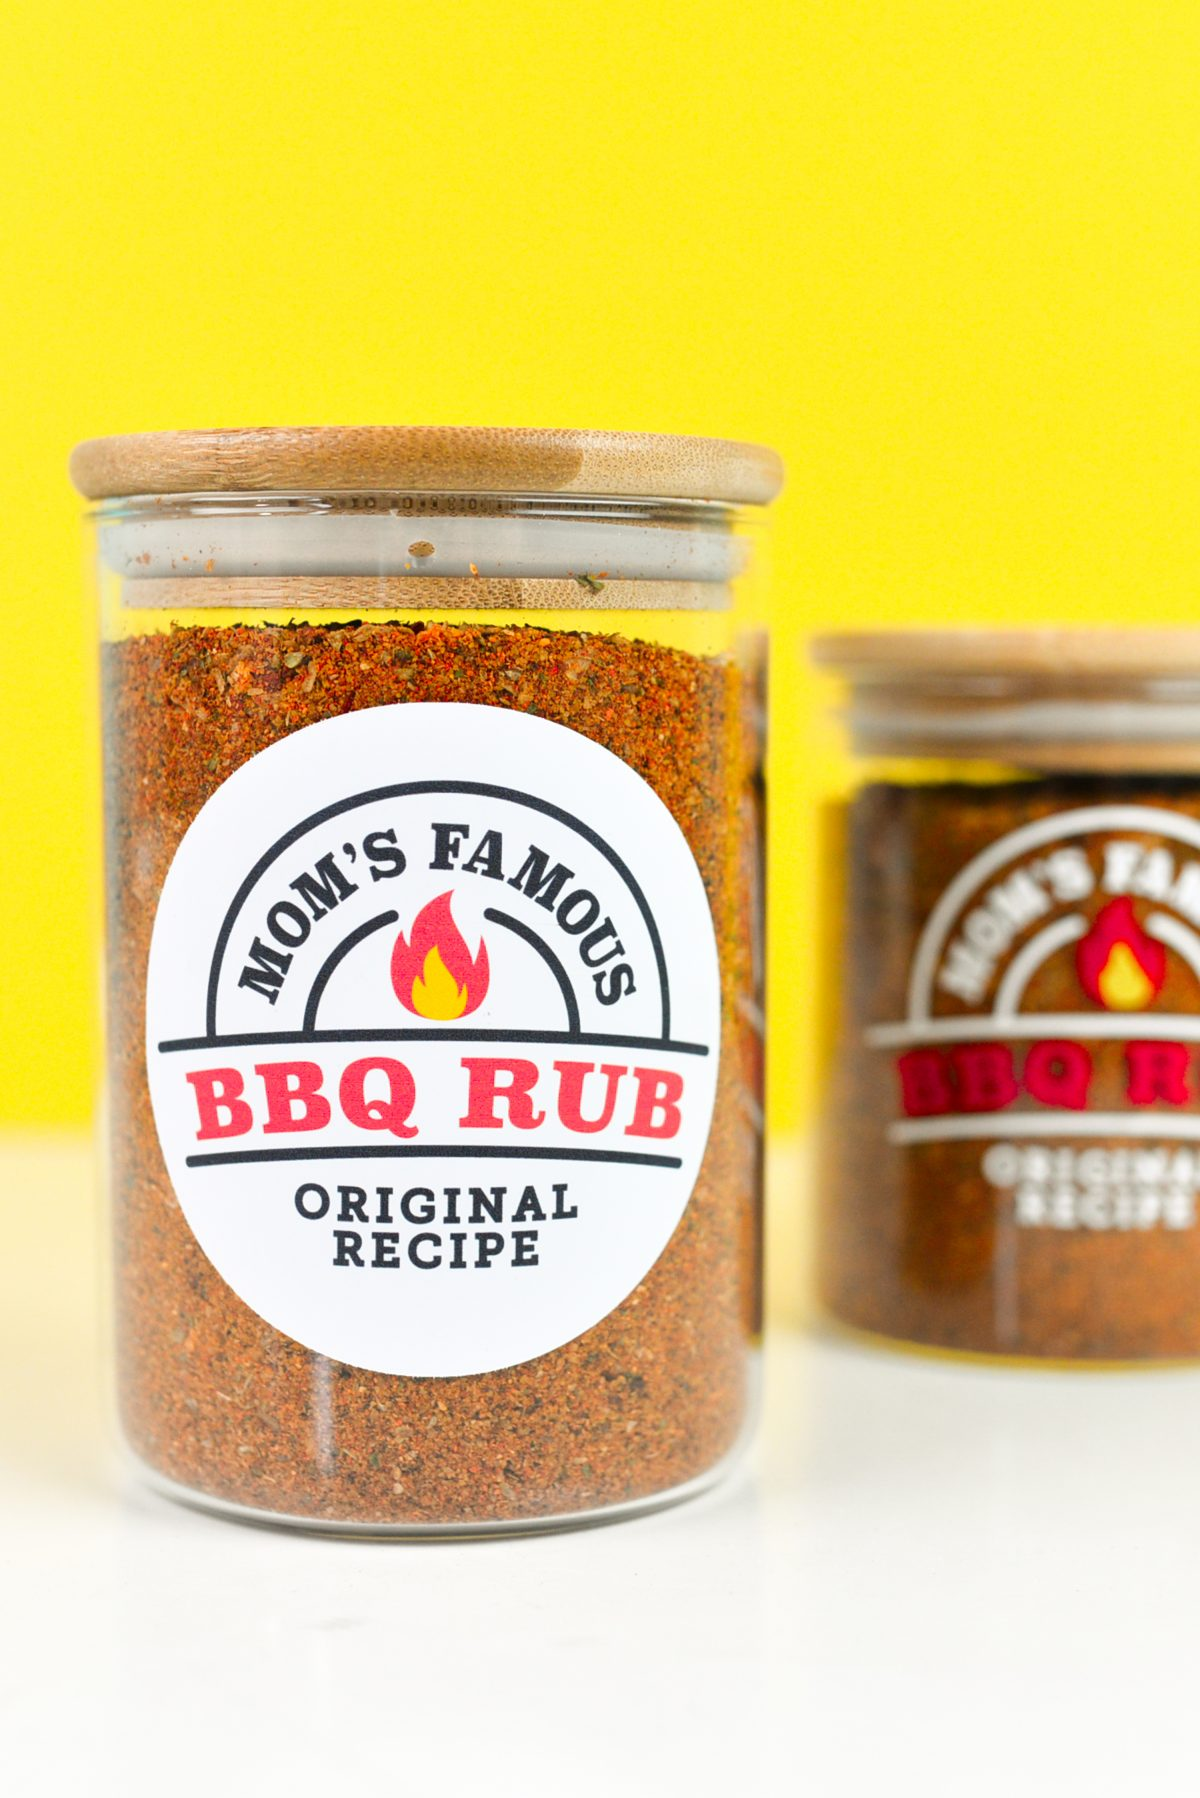 Two jars with two BBQ labels in front of a yellow background